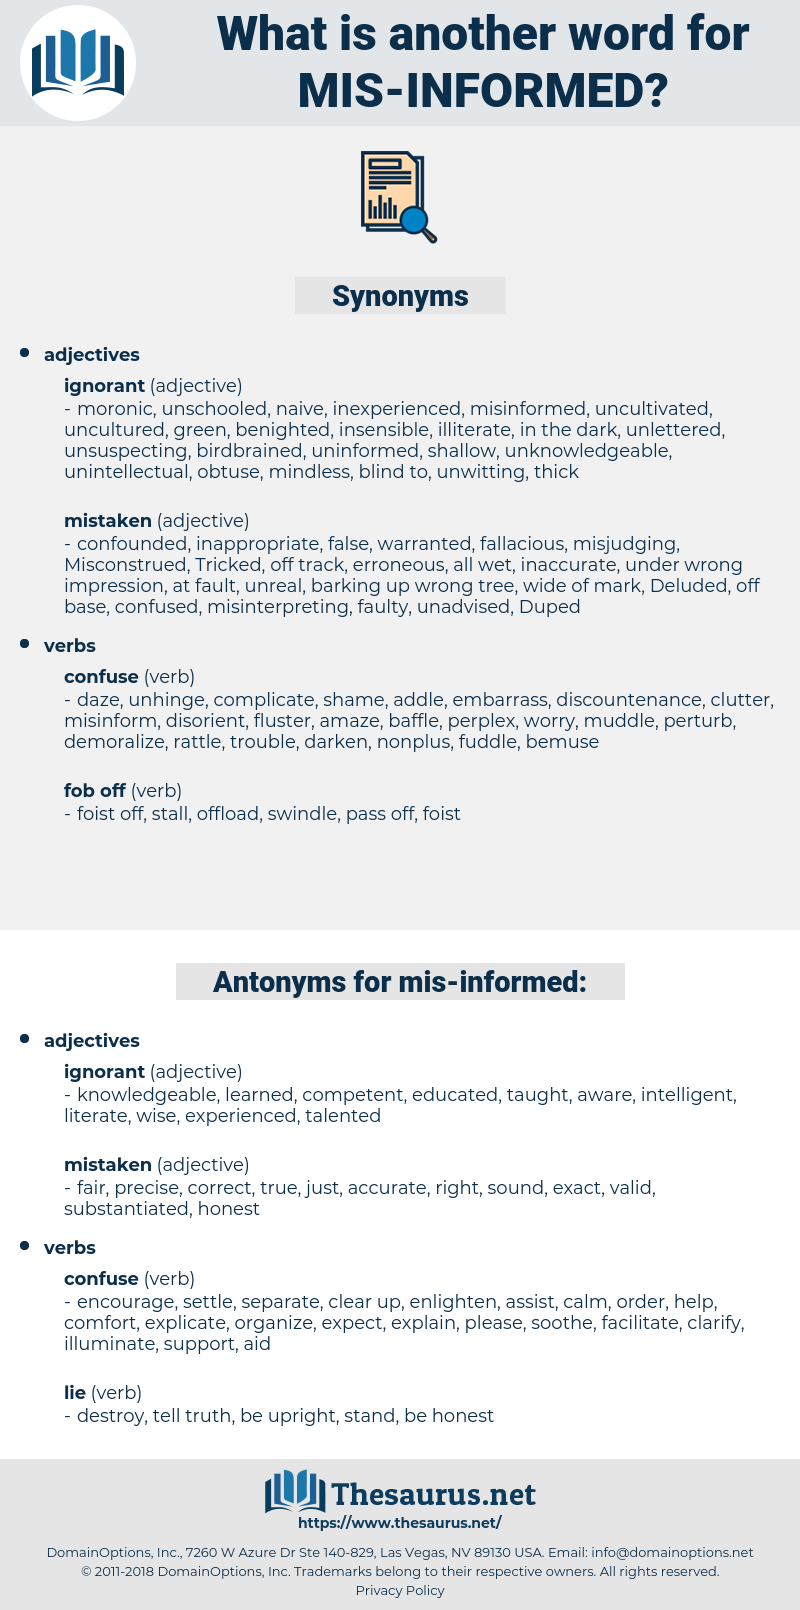 mis informed, synonym mis informed, another word for mis informed, words like mis informed, thesaurus mis informed